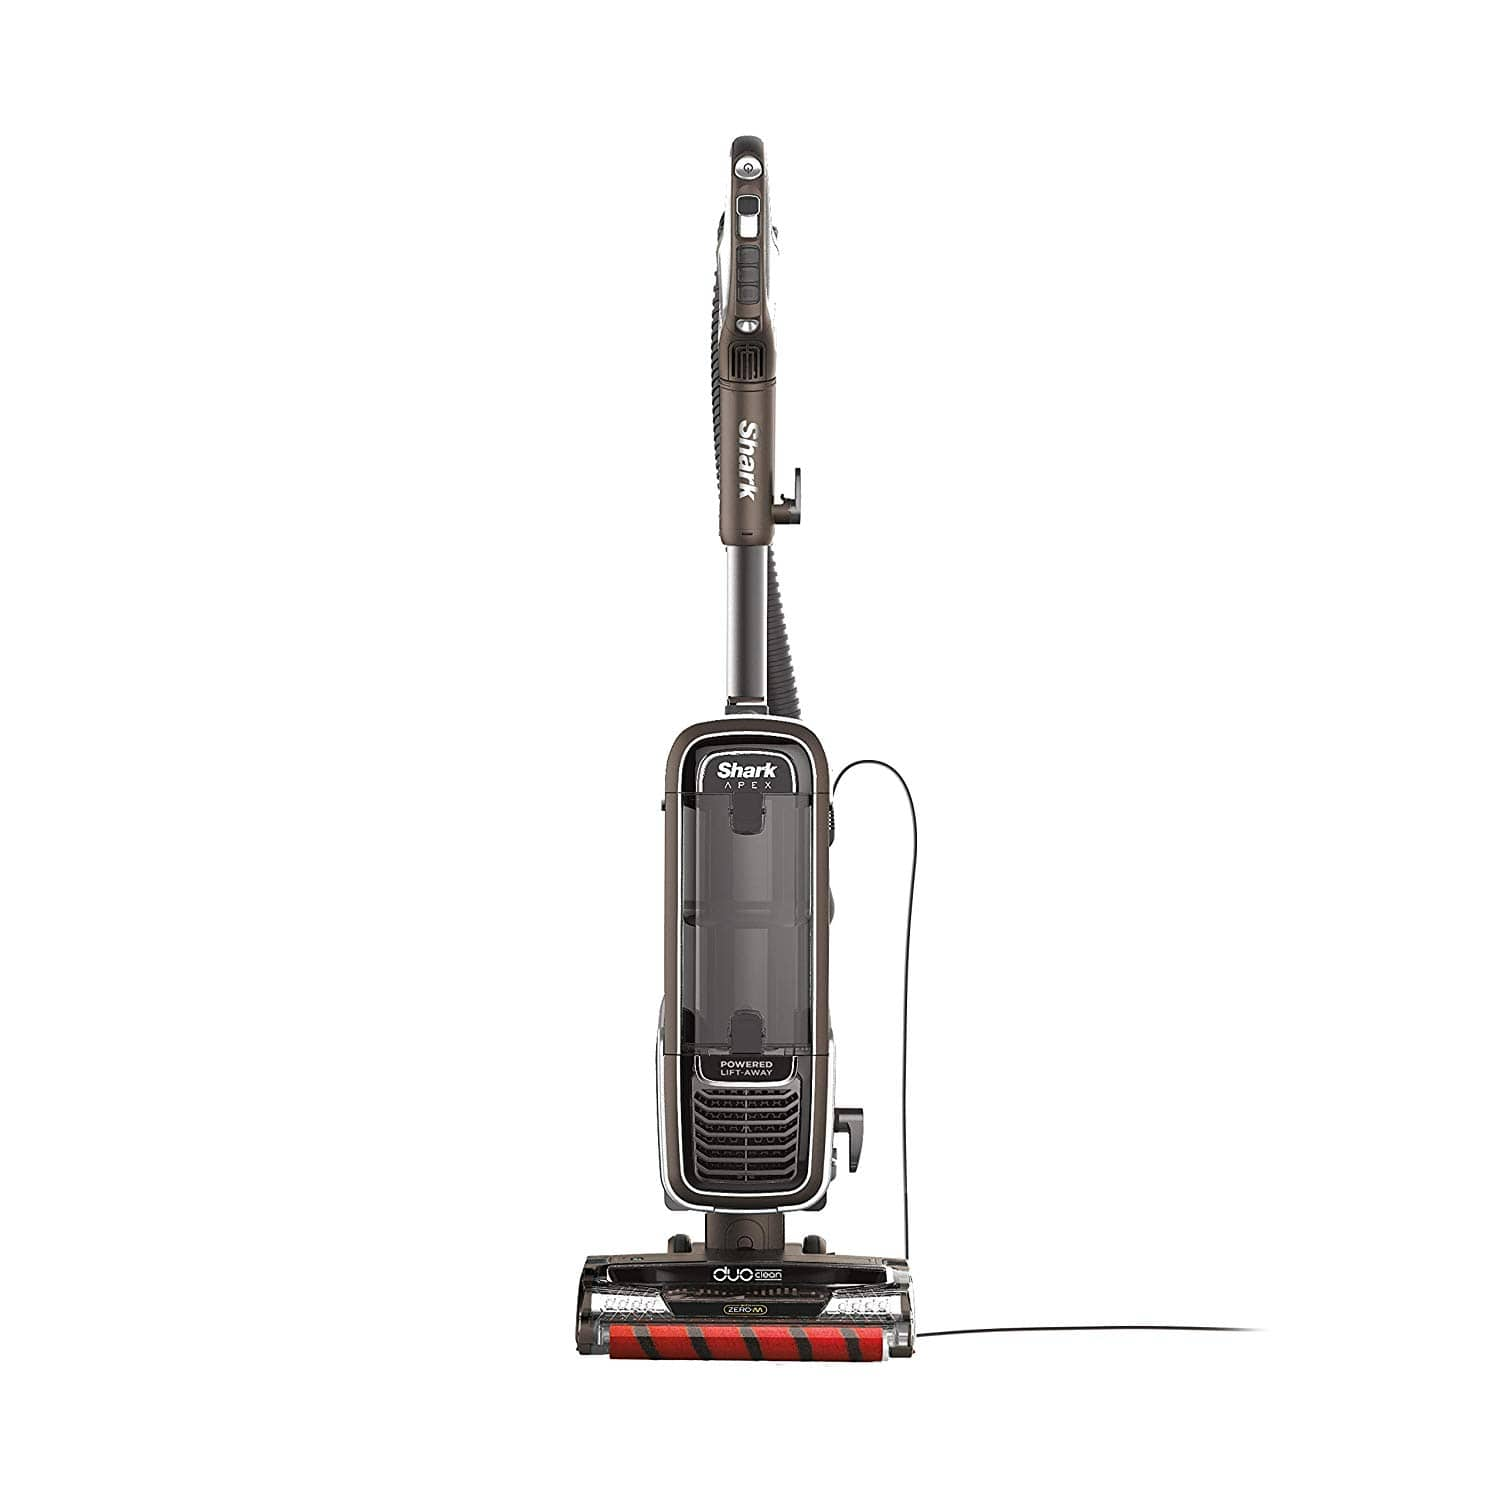 Shark APEX Upright Vacuum with DuoClean for Carpet and HardFloor Cleaning, Zero-M Anti-Hair Wrap, & Powered Lift-Away with Hand Vacuum (AZ1002), Espresso $239.99